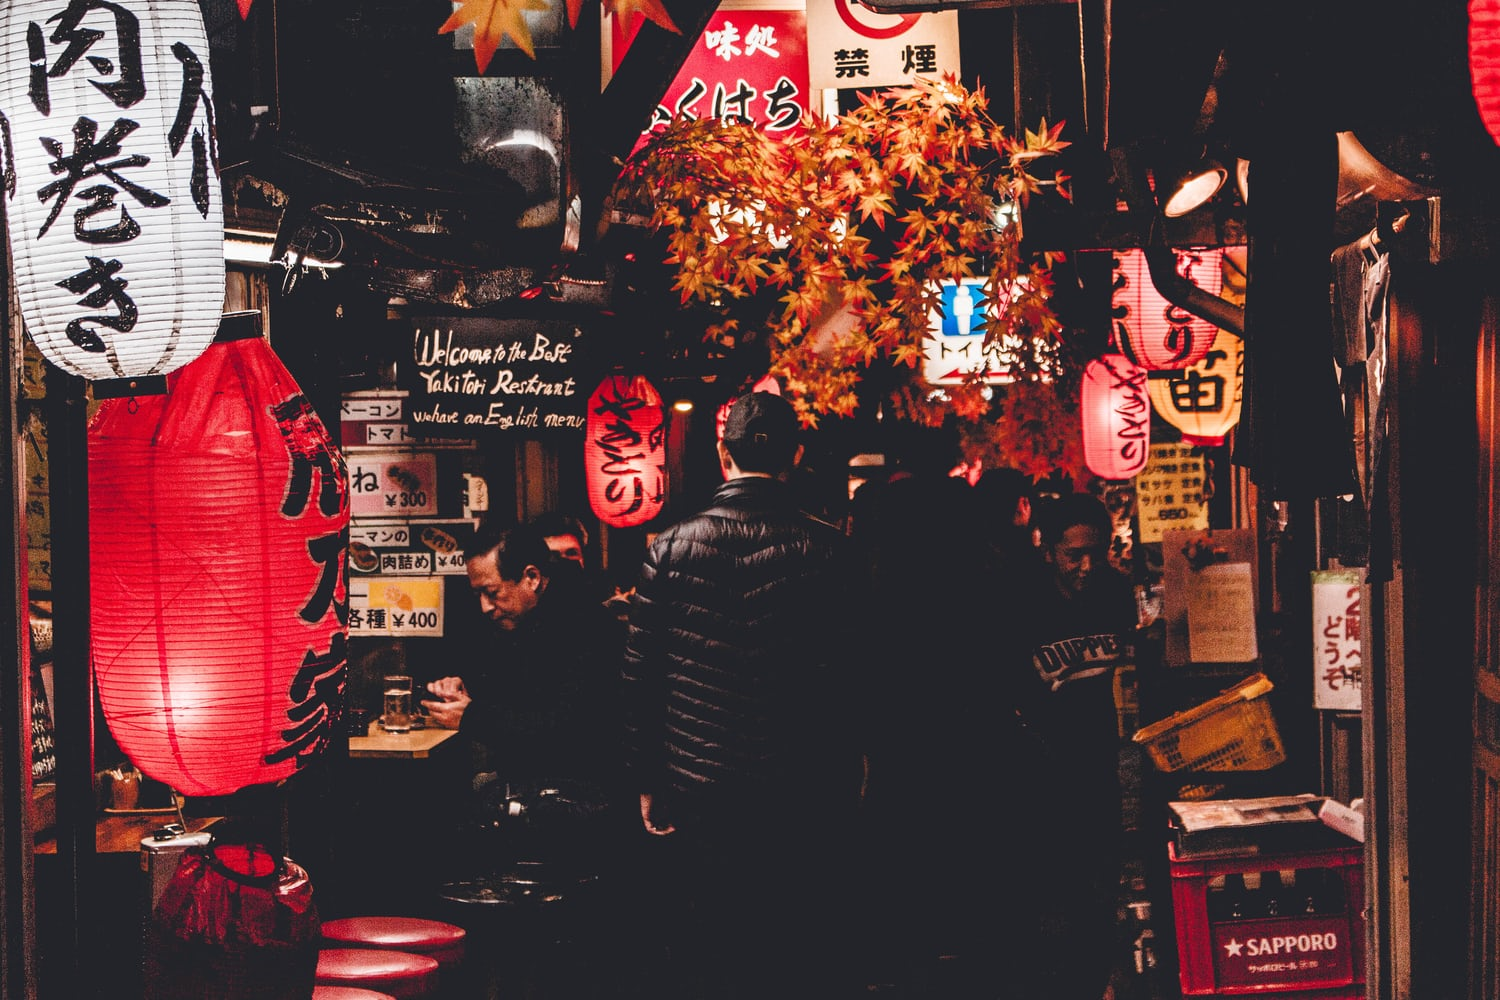 Yakitori Alley | Alexandre Chambon on Unsplash